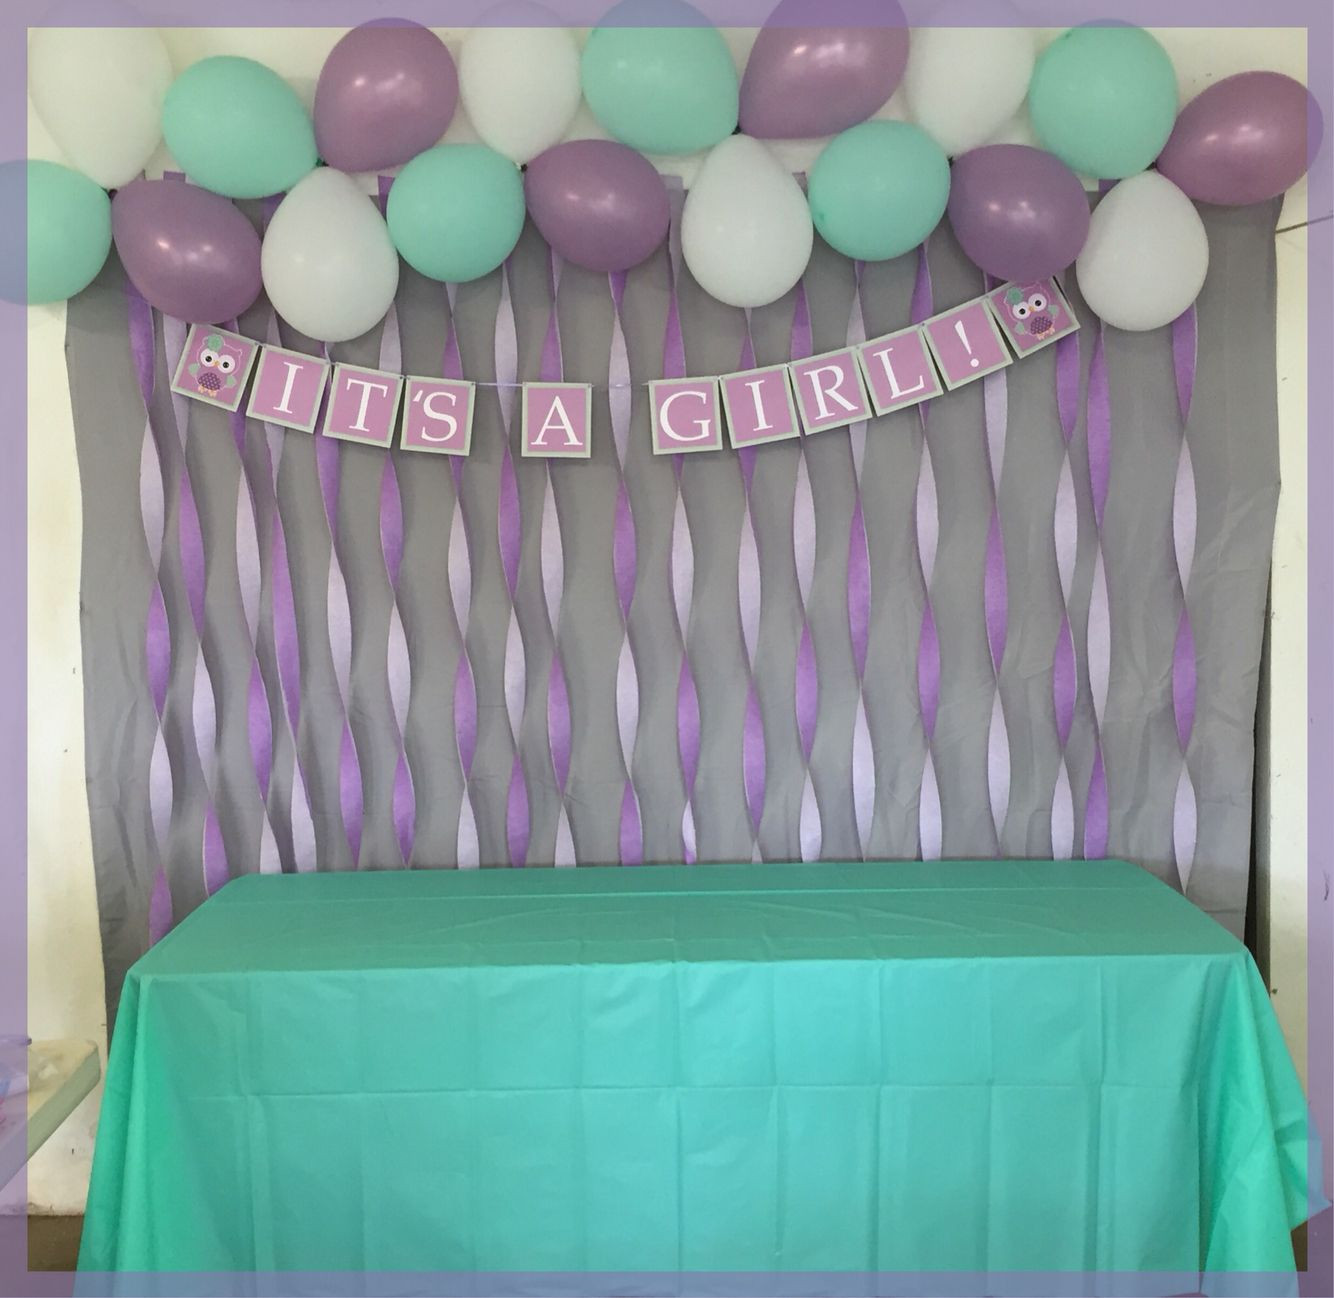 Best ideas about Baby Shower Decorating Ideas DIY . Save or Pin Best 25 Diy baby shower decorations ideas on Pinterest Now.